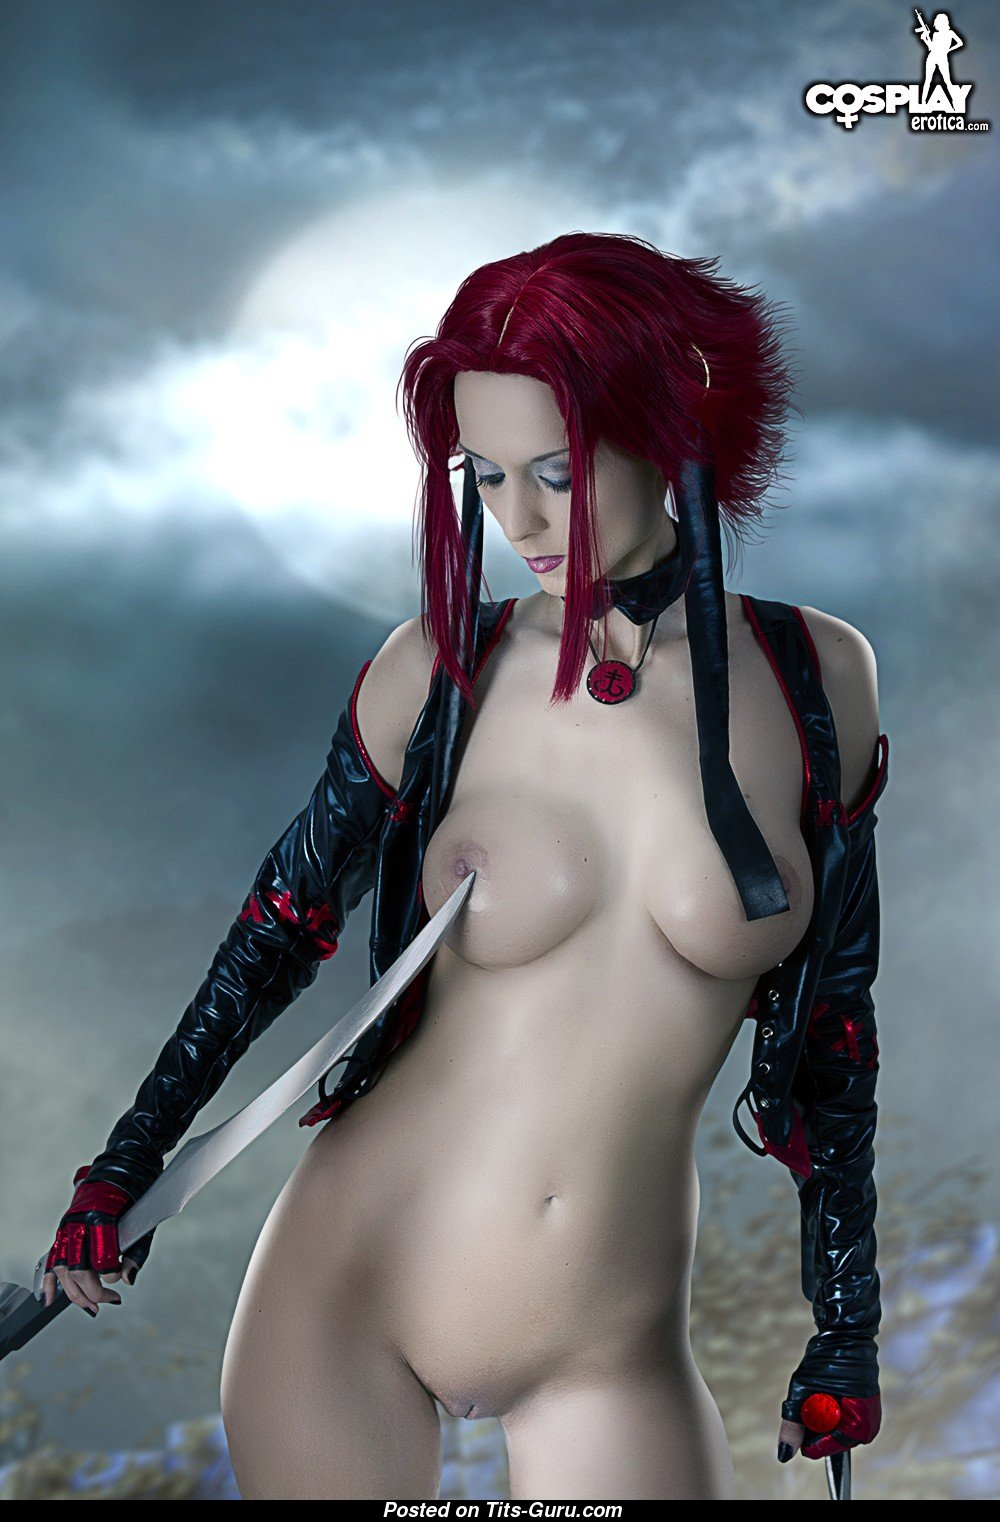 Cosplay sexy nude